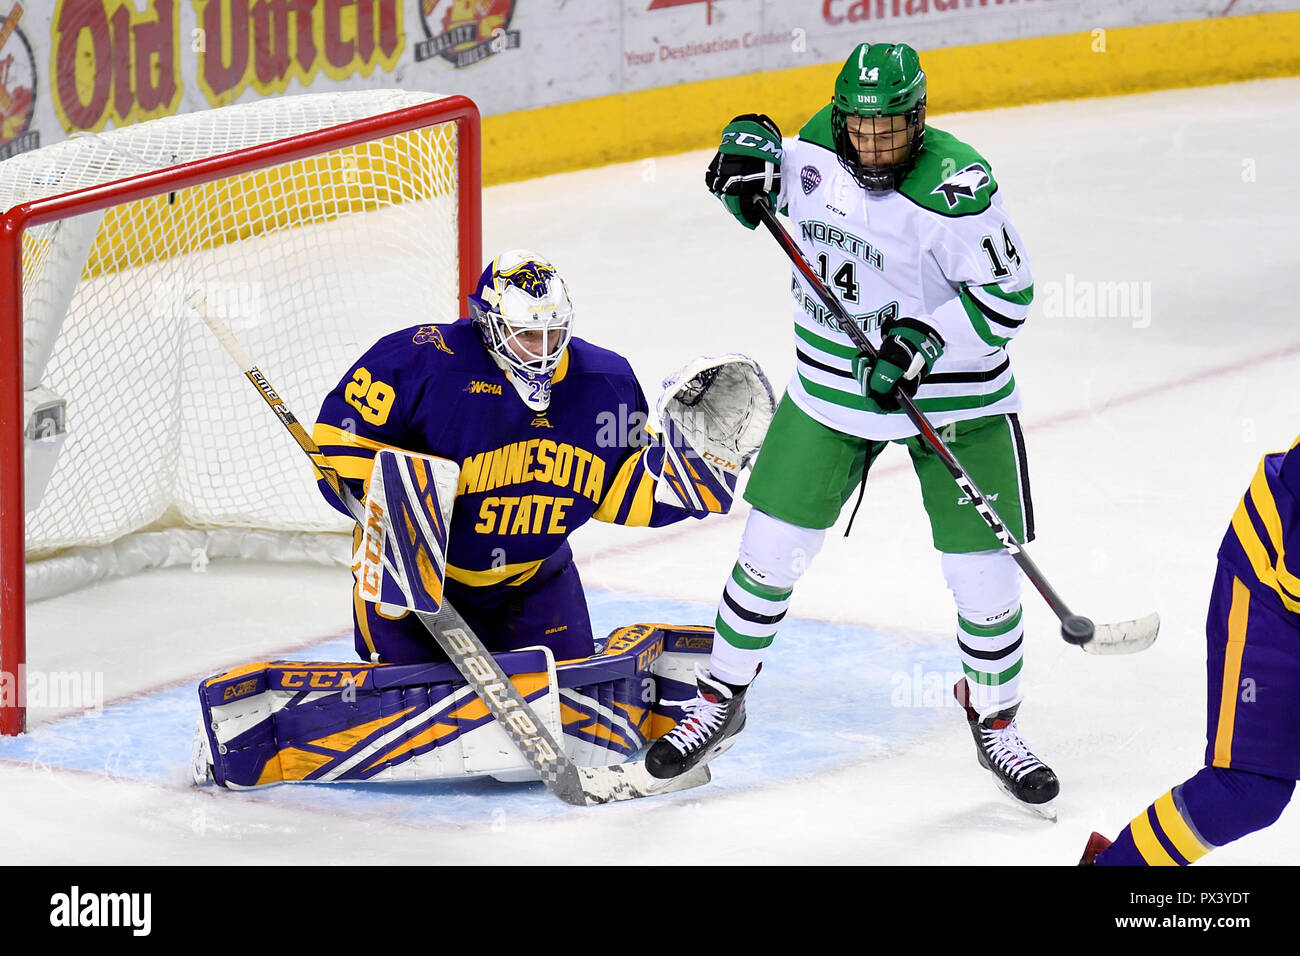 October 19, 2018 North Dakota Fighting Hawks forward Jasper Weatherby (14) redirects a shot in front of Minnesota State Mavericks goaltender Dryden McKay (29) during a NCAA men's college hockey game between the Minnesota State Mavericks and the University of North Dakota Fighting Hawks at Ralph Engelstad Arena in Grand Forks, ND Mankato won 7-4. Photo by Russell Hons/CSM - Stock Image